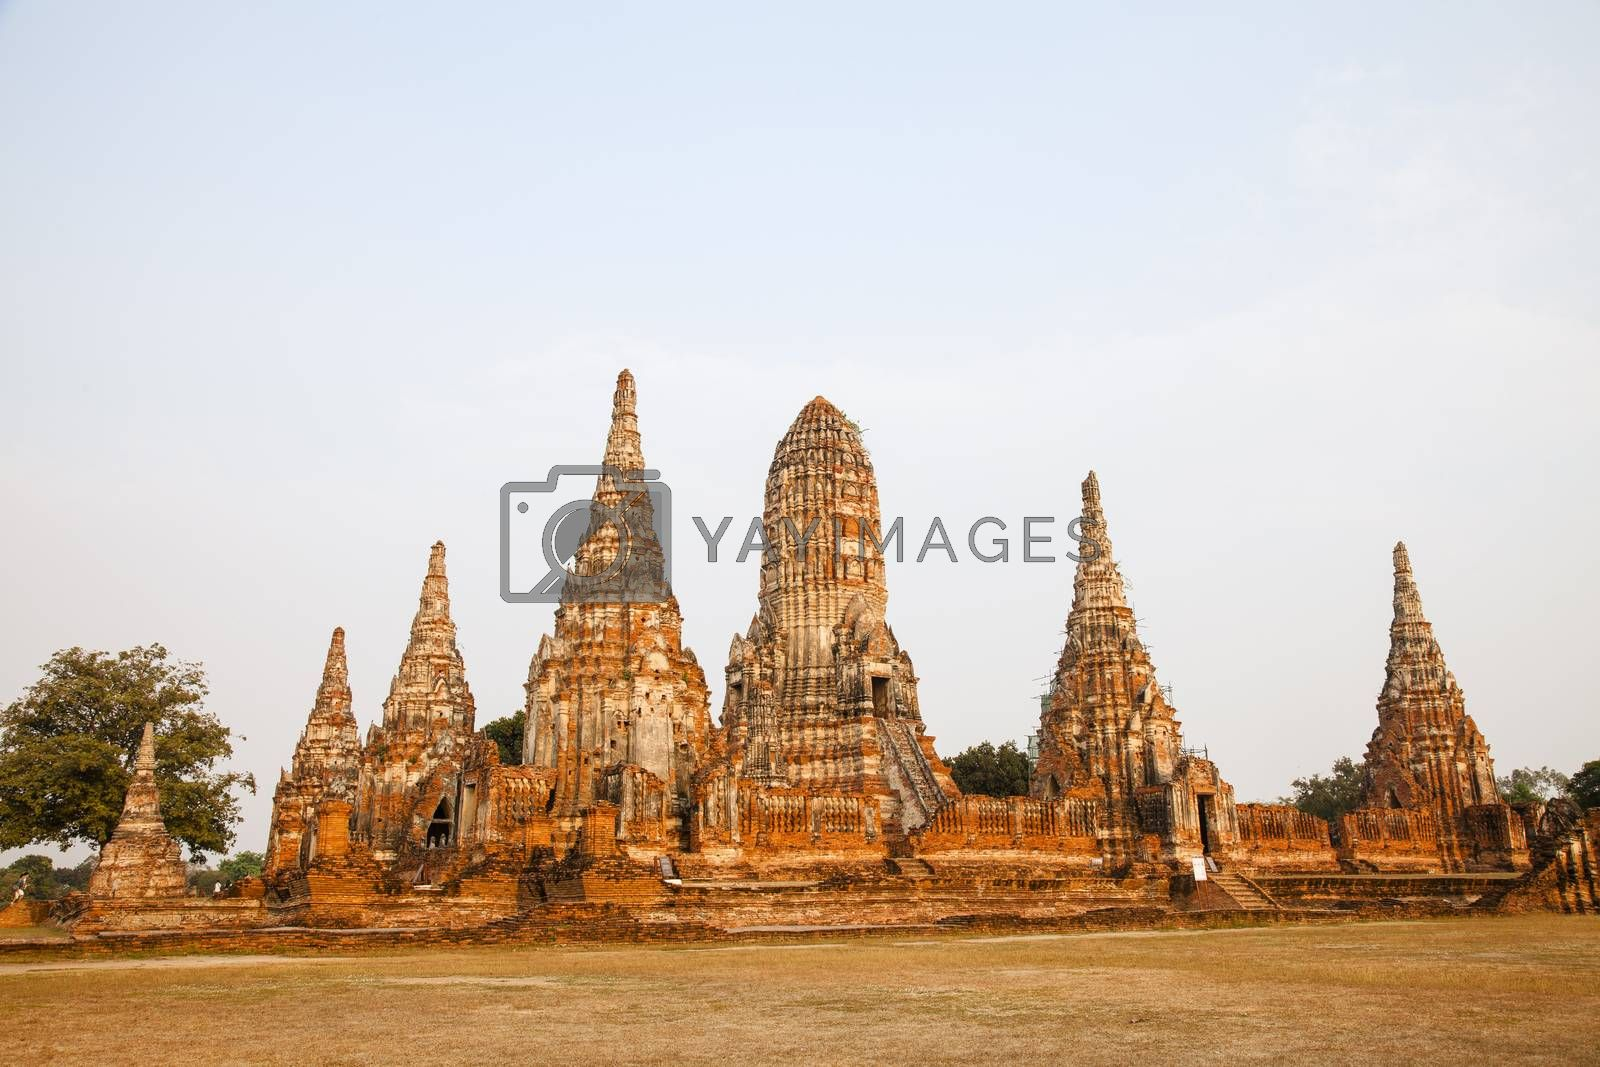 Wat Chaiwatthanaram Buddhist temple in the city of Ayutthaya Historical Park, Thailand. Ayutthaya's best known temples and a major tourist attraction.